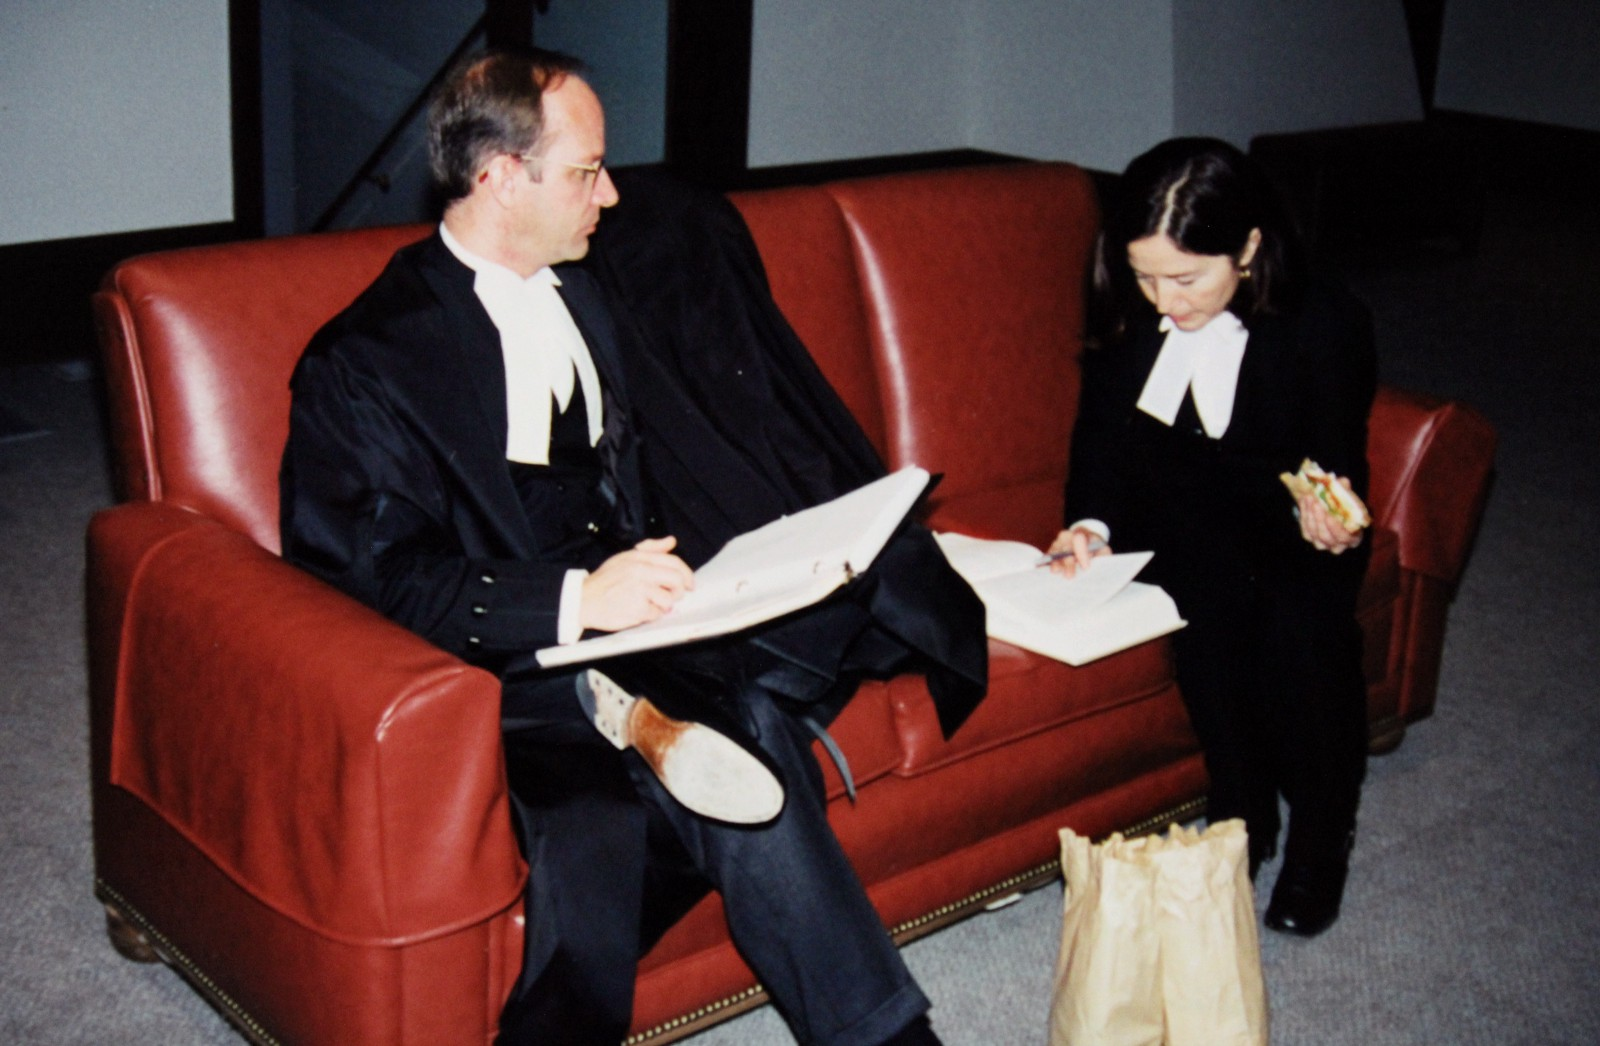 Doug Stollery and lead counsel Sheila Greckol at work on Vriend versus Alberta over lunch.